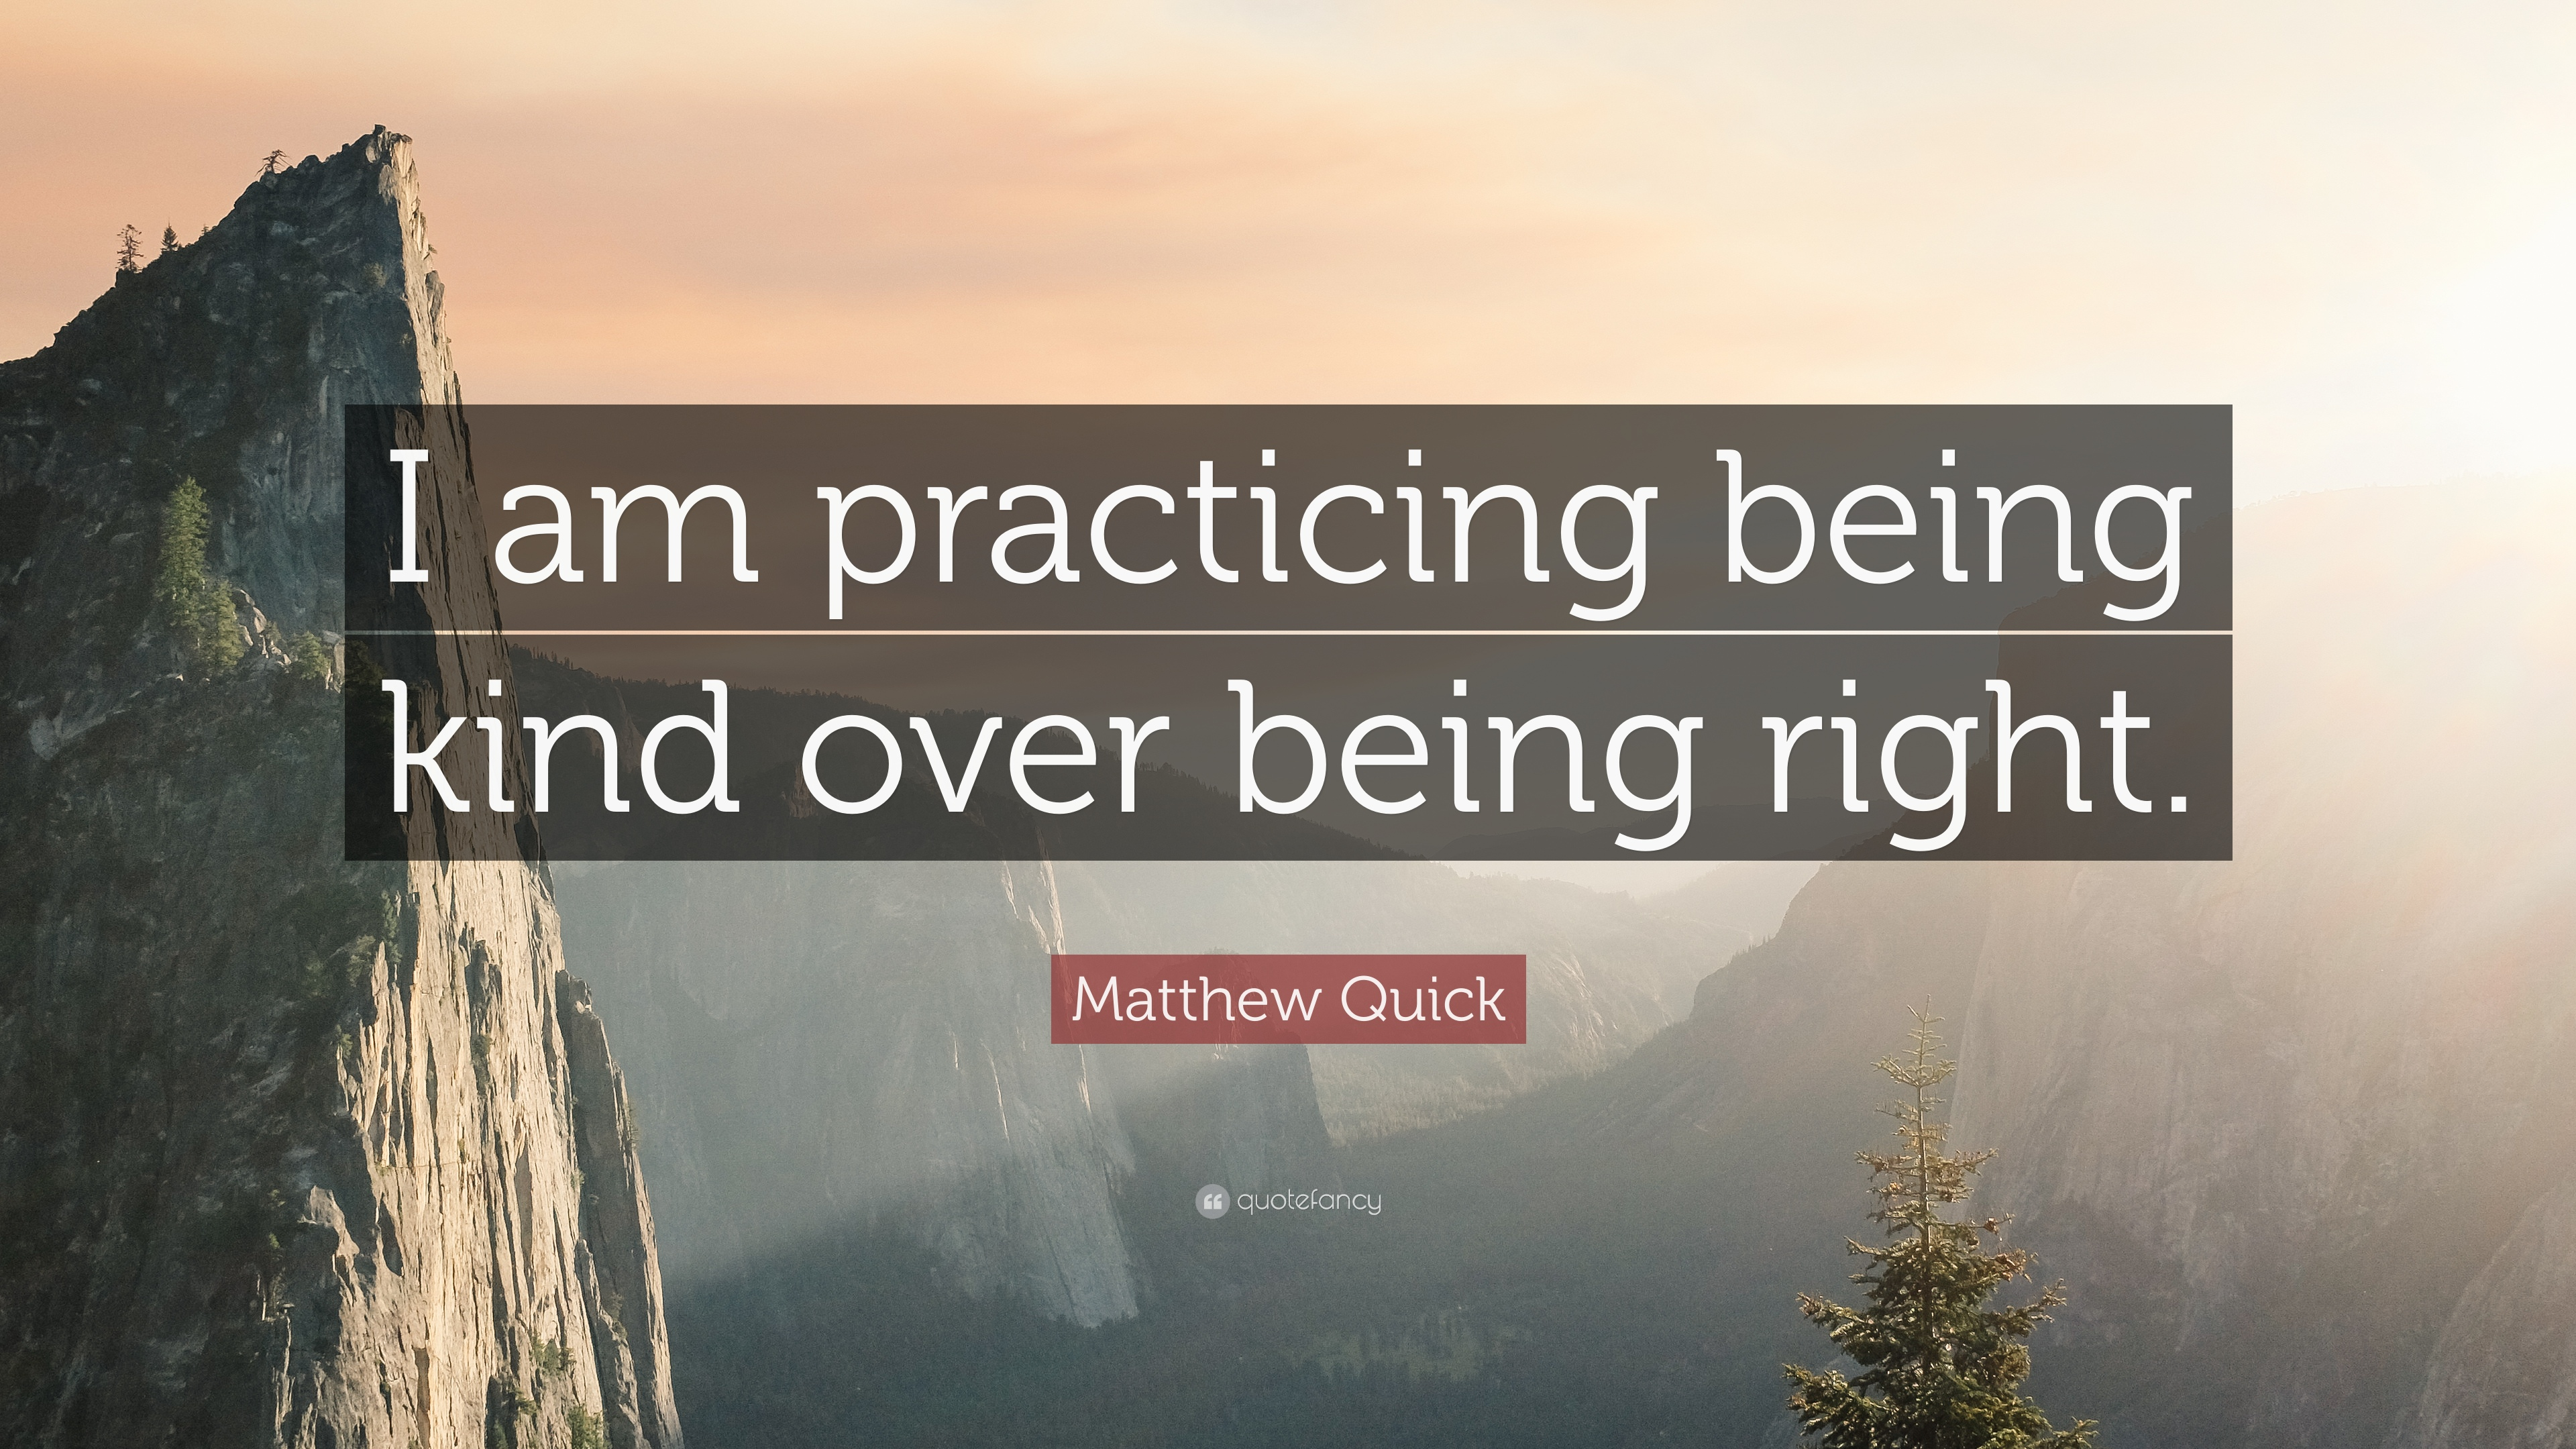 Quick Quotes Matthew Quick Quotes 48 Wallpapers  Quotefancy